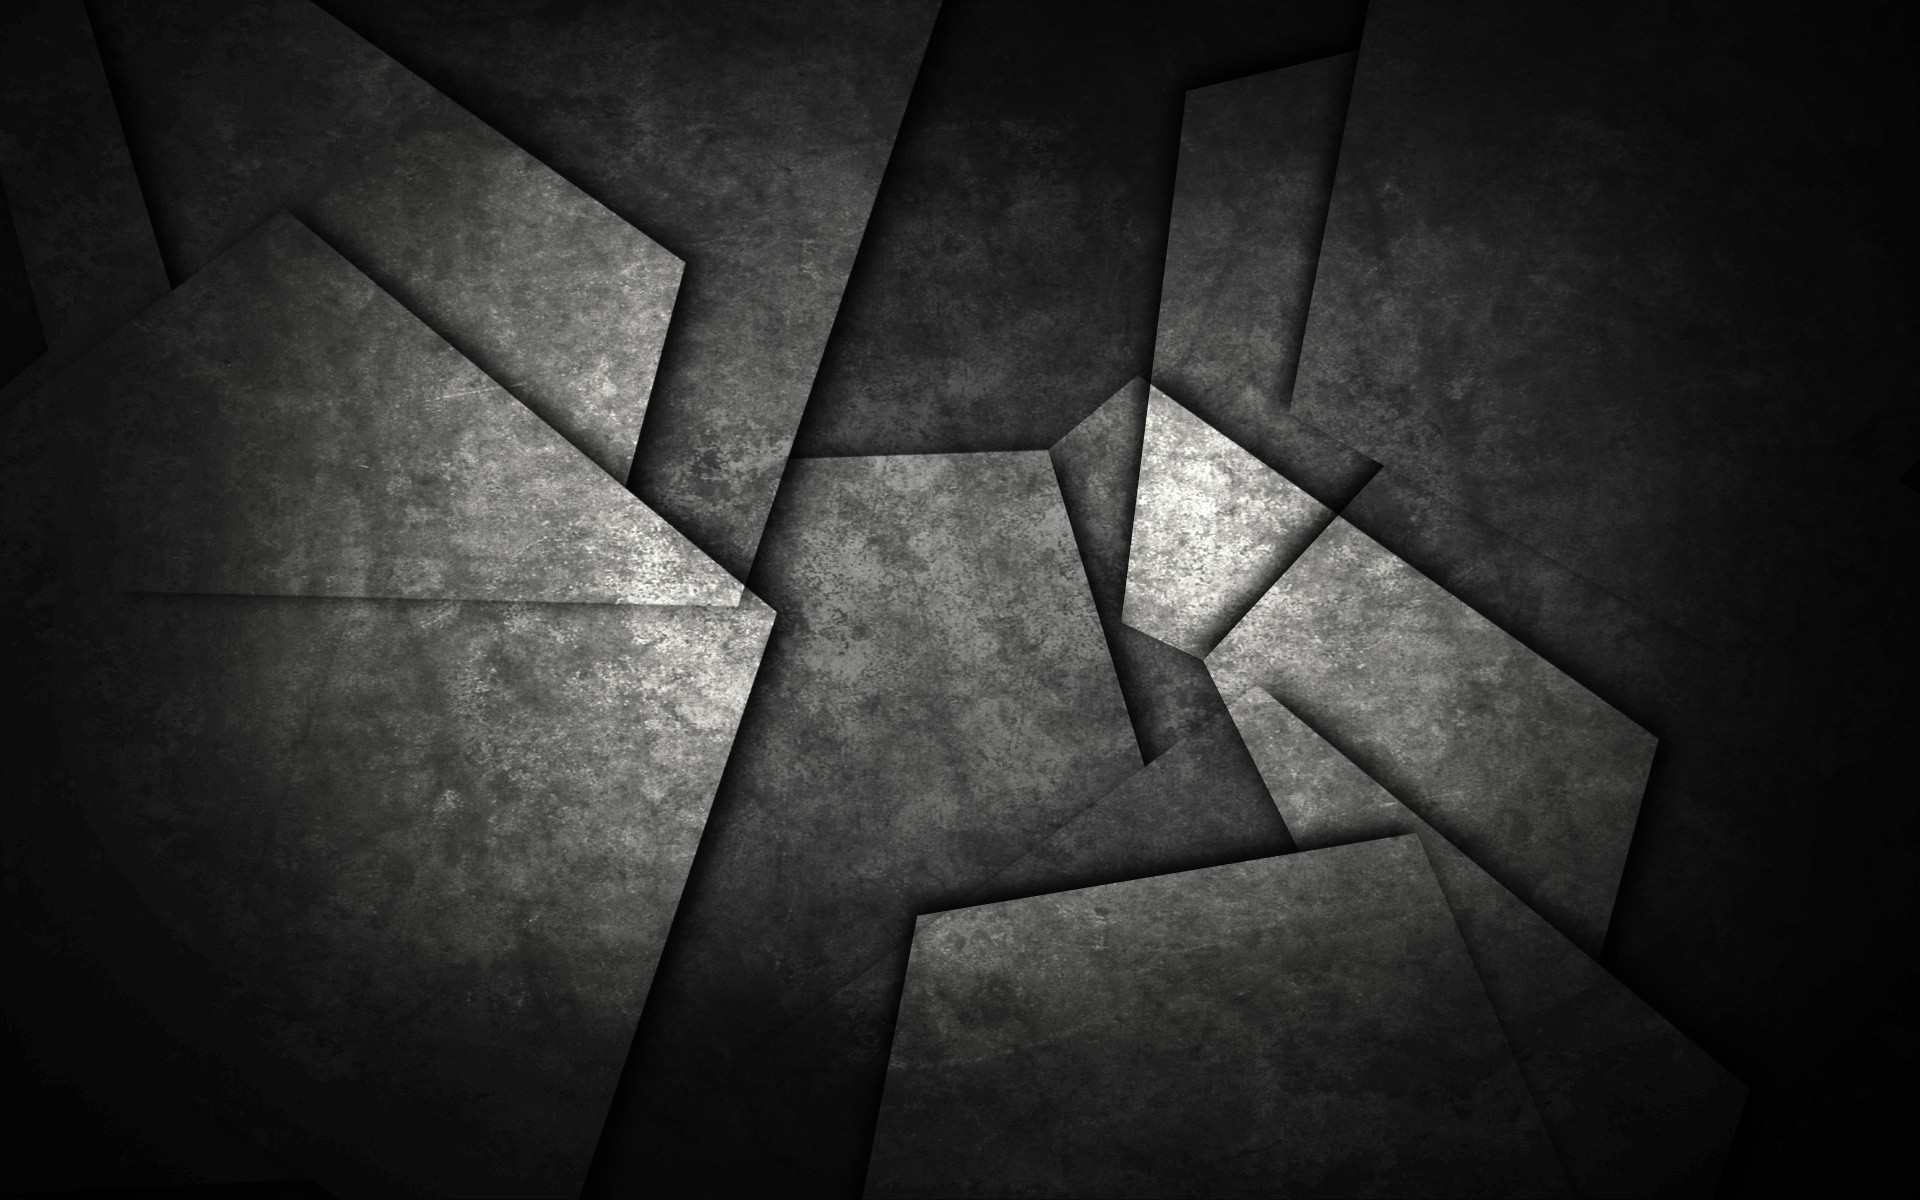 1920x1200 Image for Black Abstract Wallpaper Free #s1yww